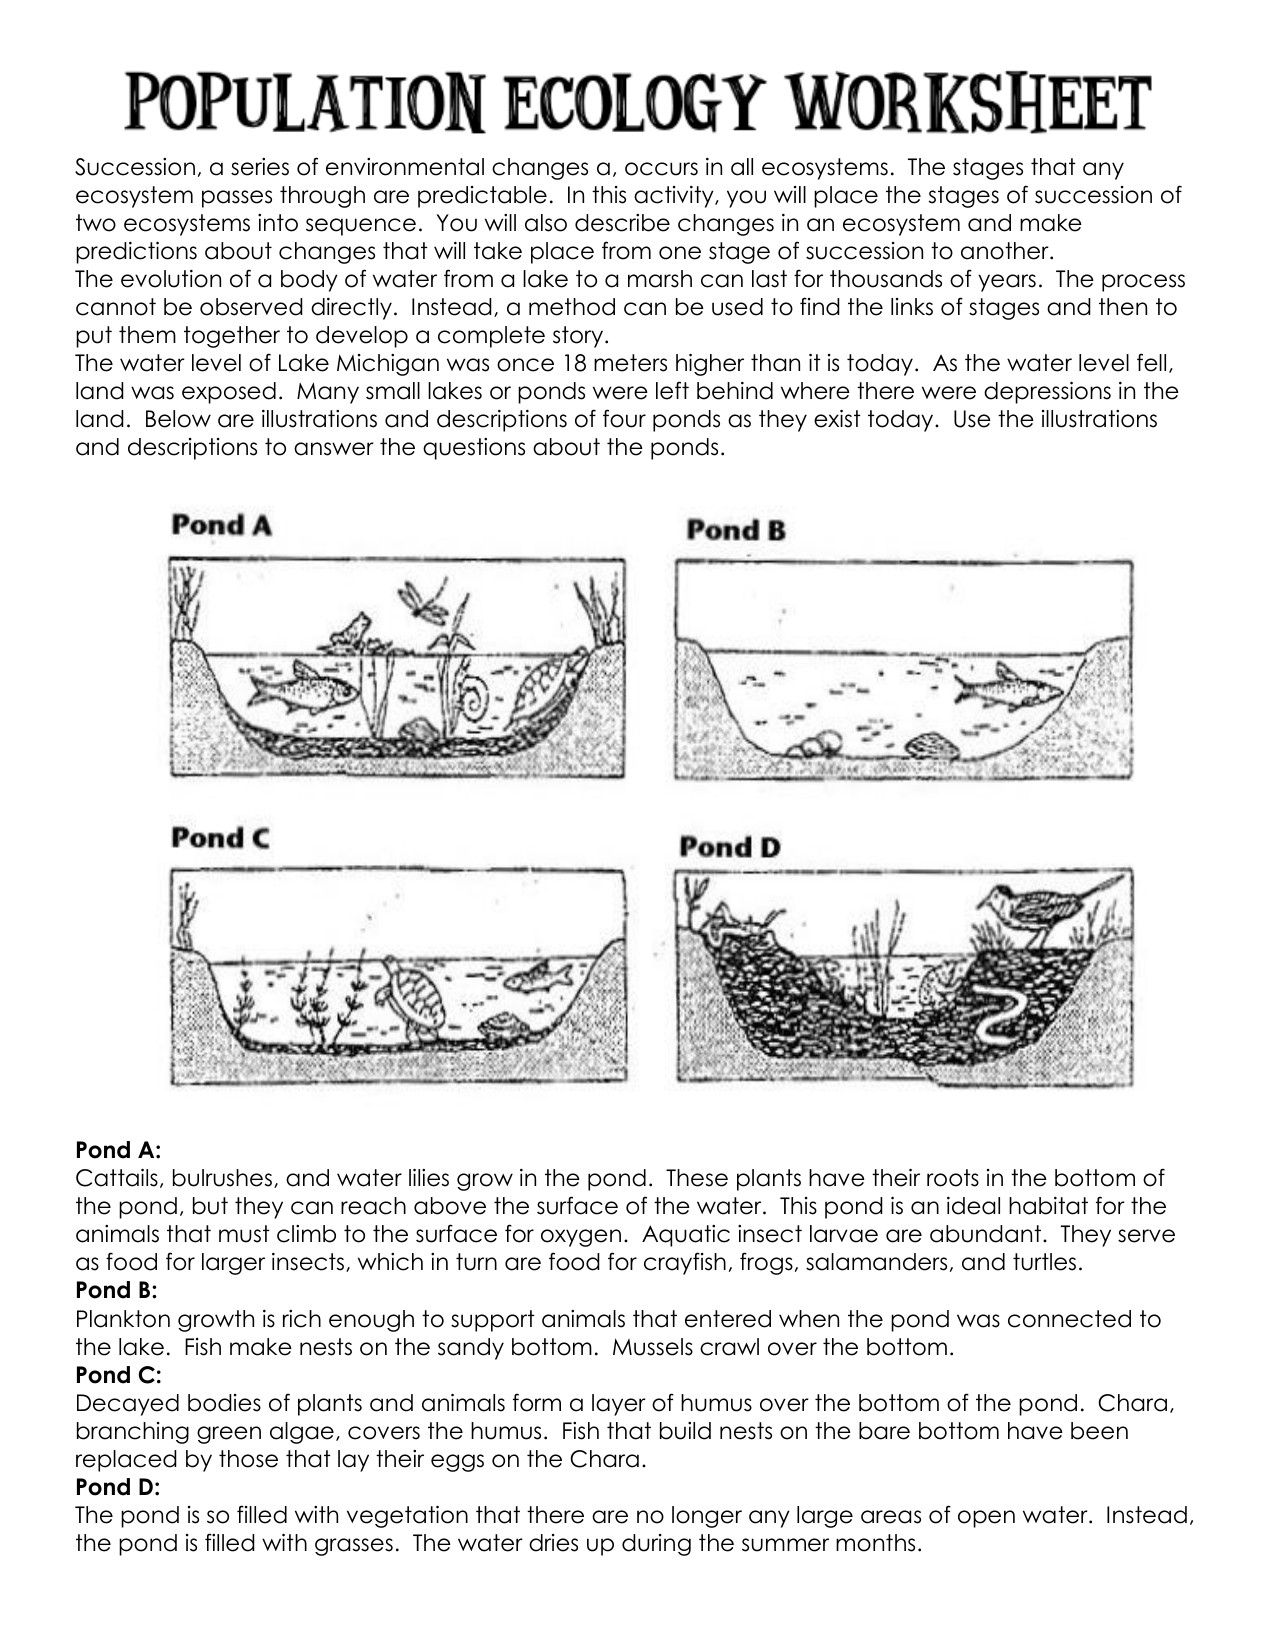 Ecological Succession Worksheet Answers Succession Worksheet for Individual